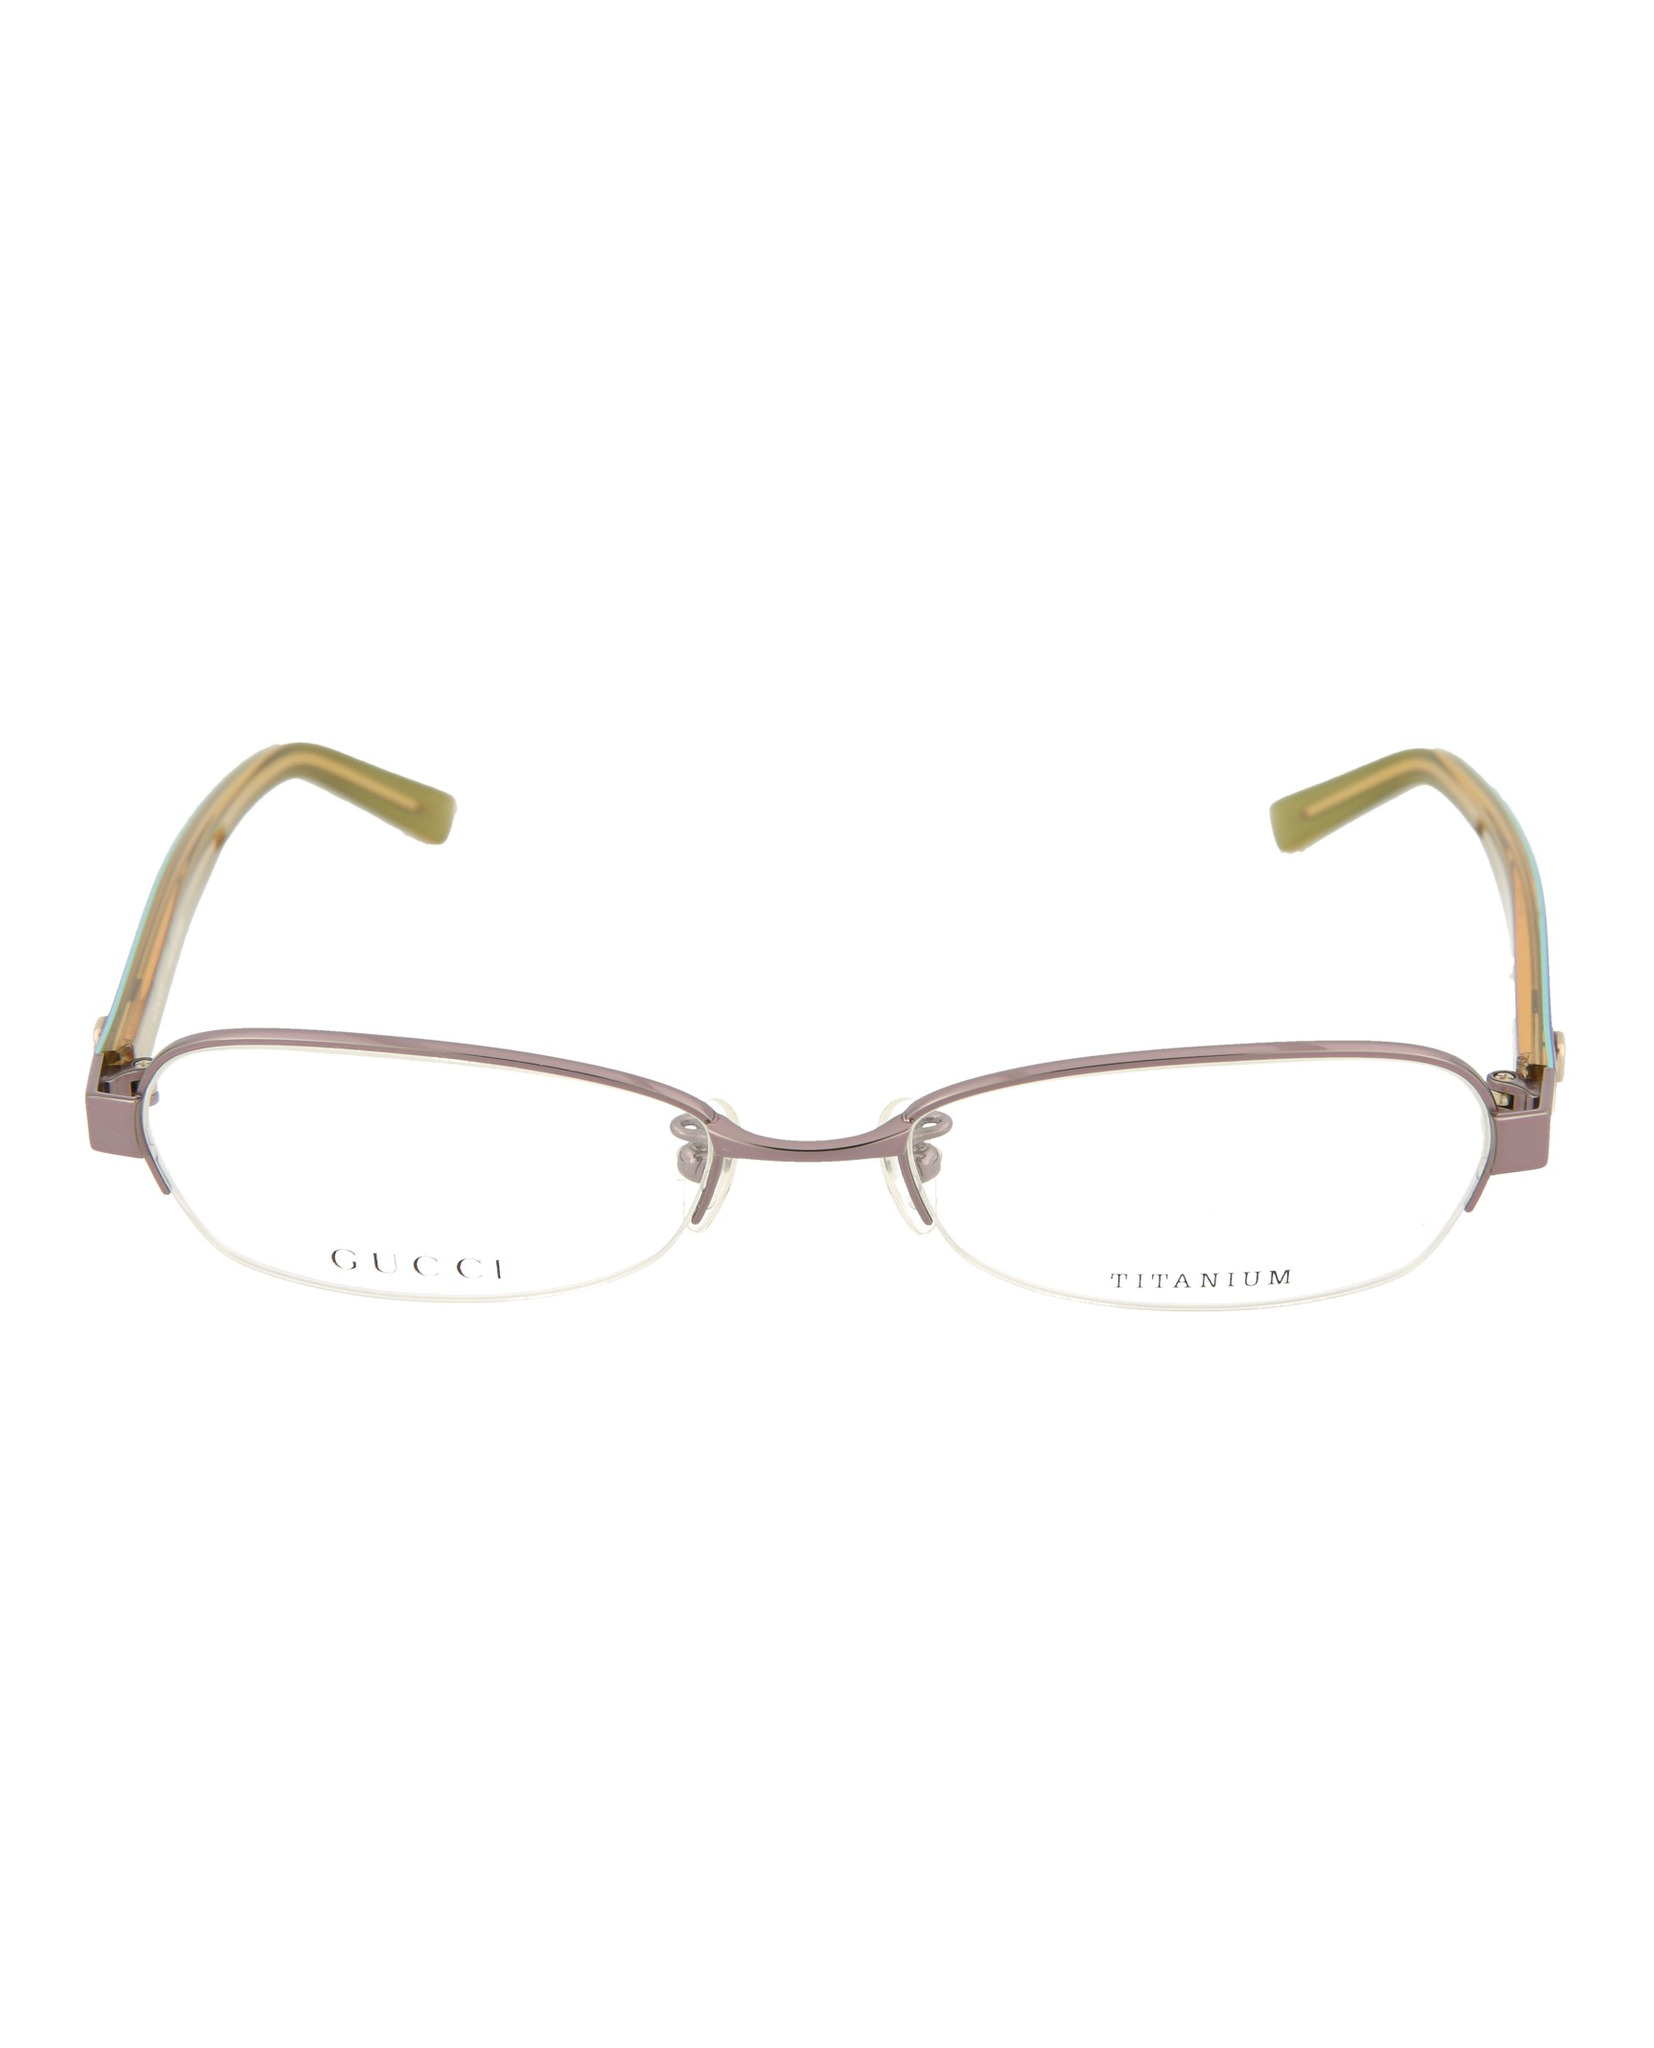 a71cfb023d Gucci Mens Round Oval Optical Frames GG9664J-15365337T-5217 ...